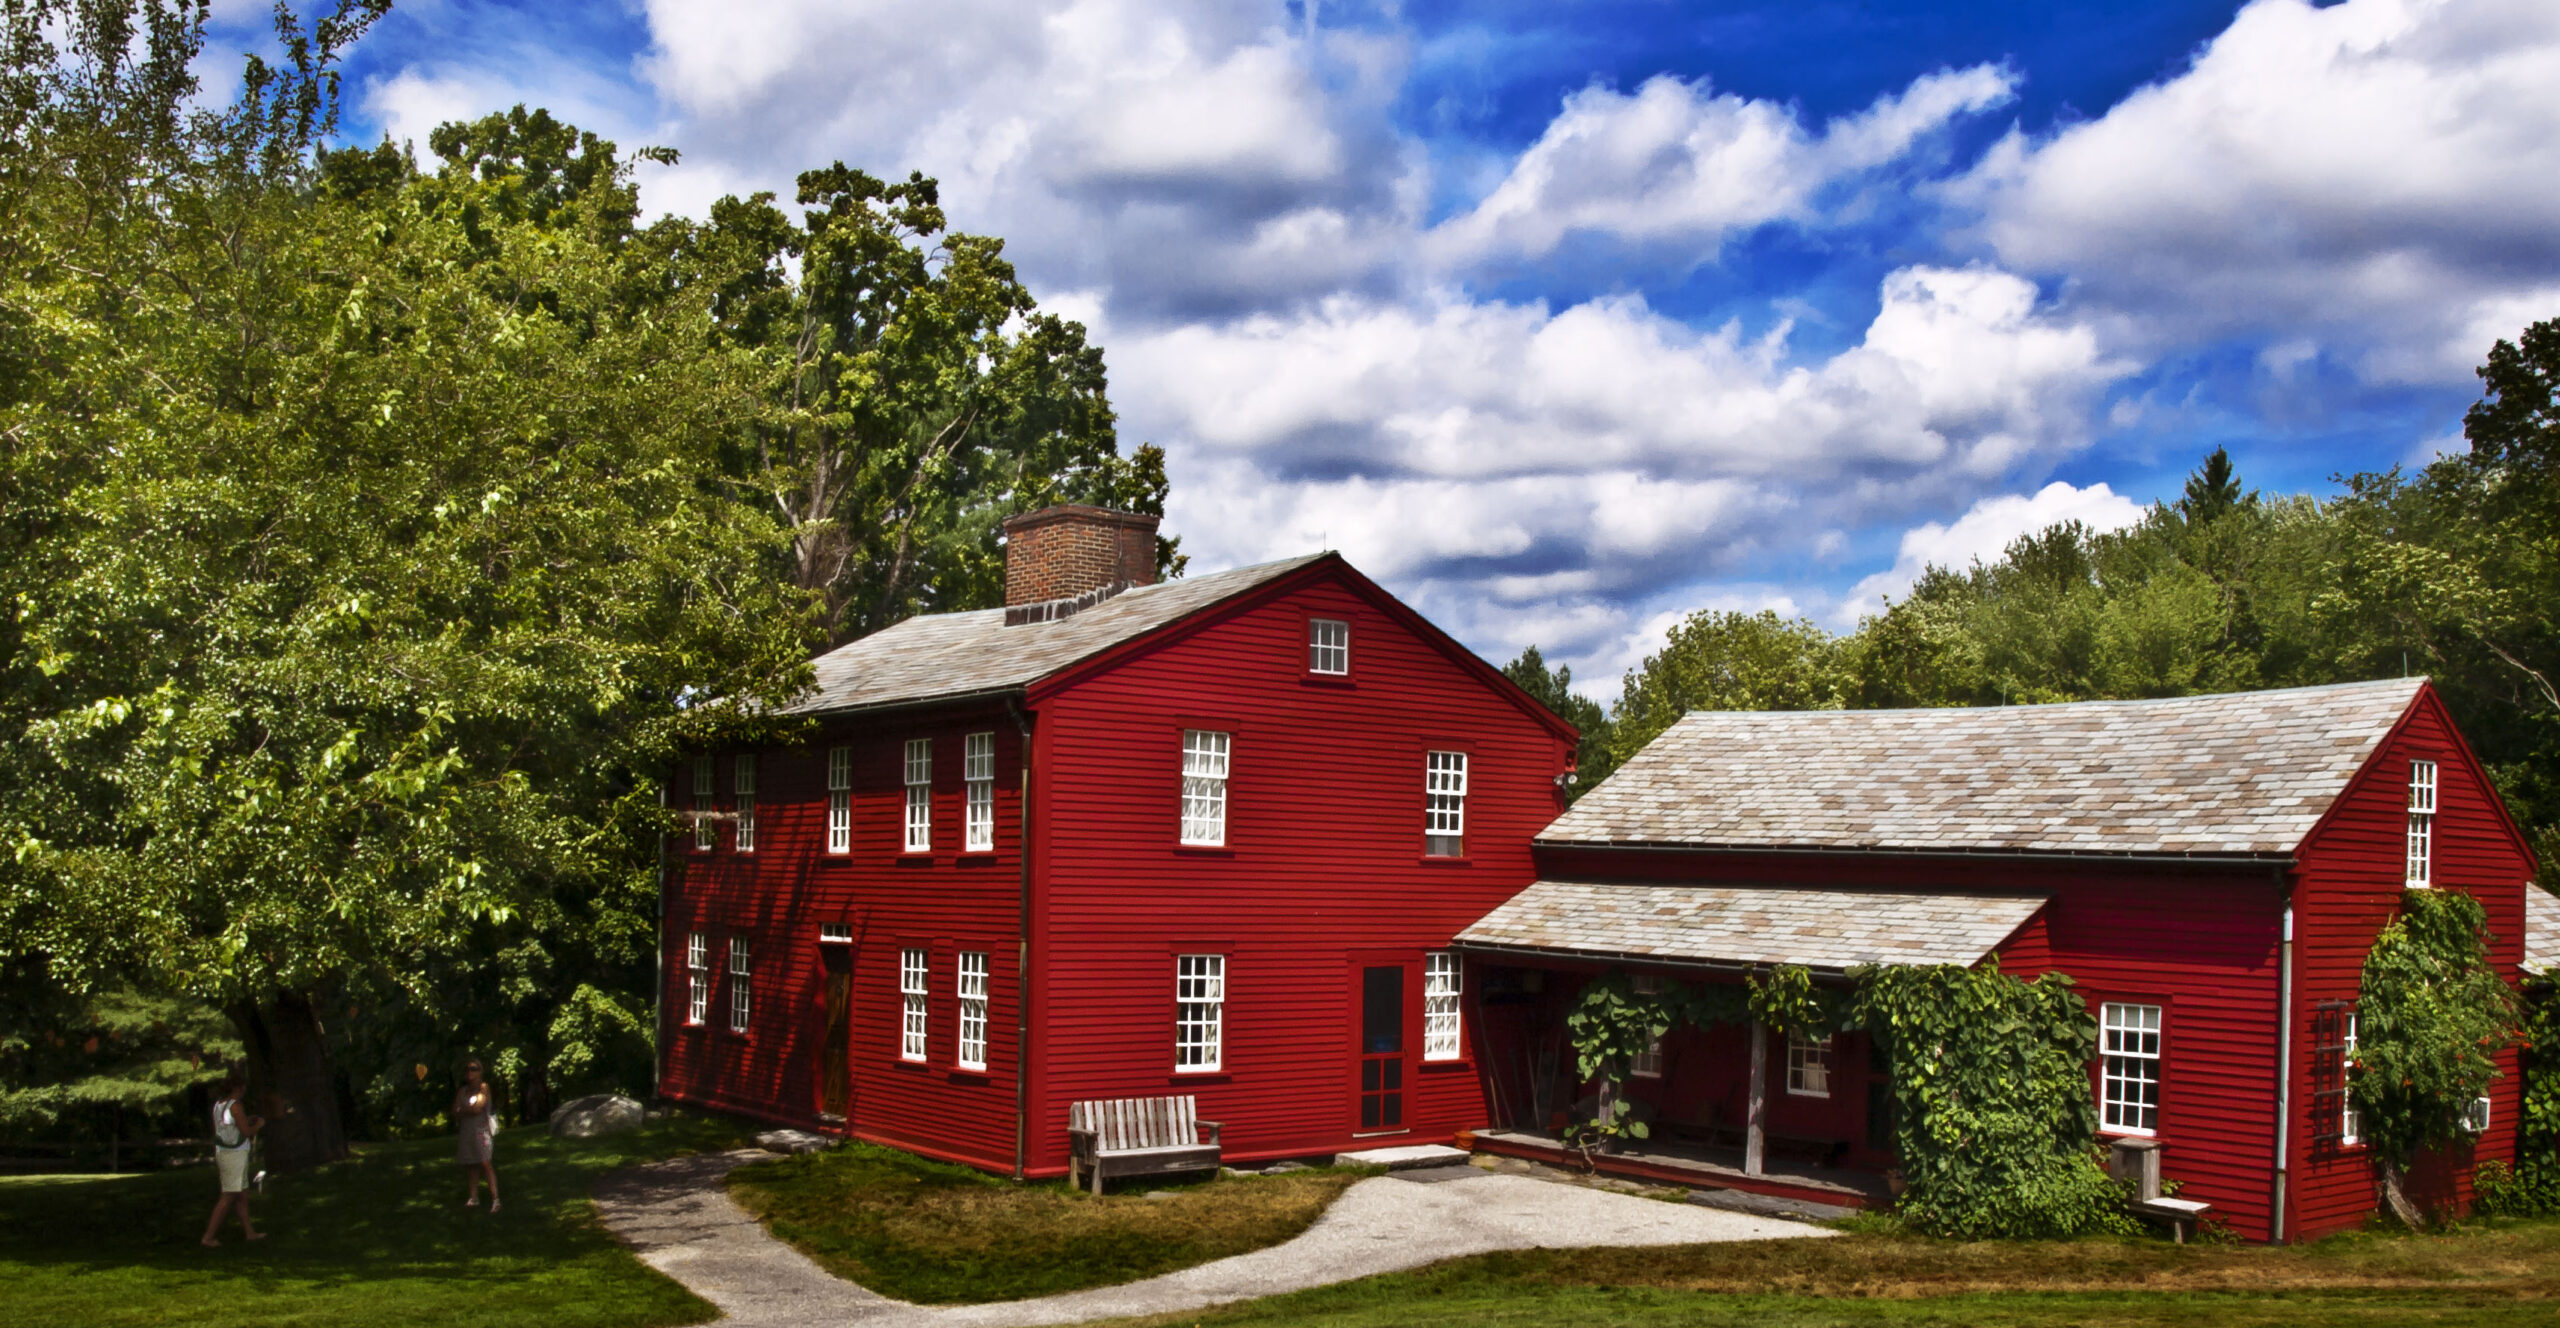 the red Alcott farm house